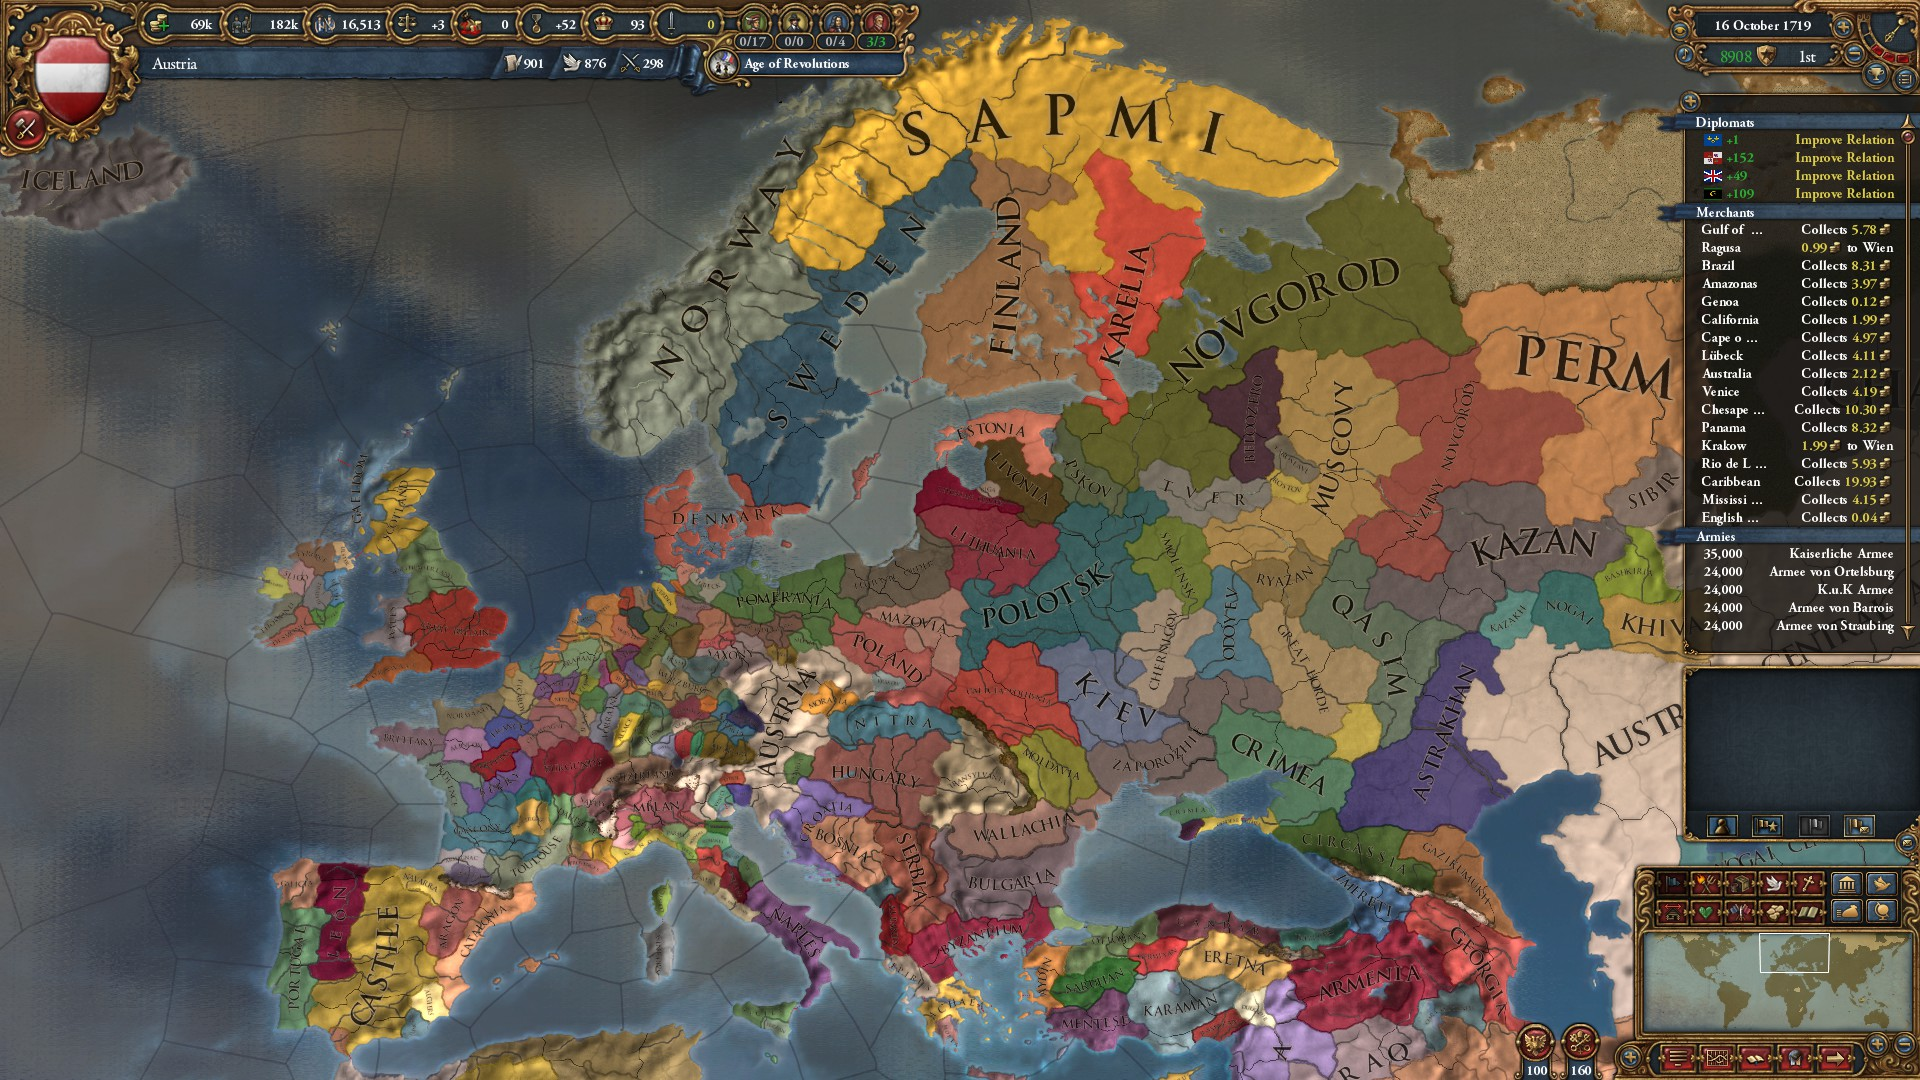 213 princes in the HRE! The hunt for the most princes